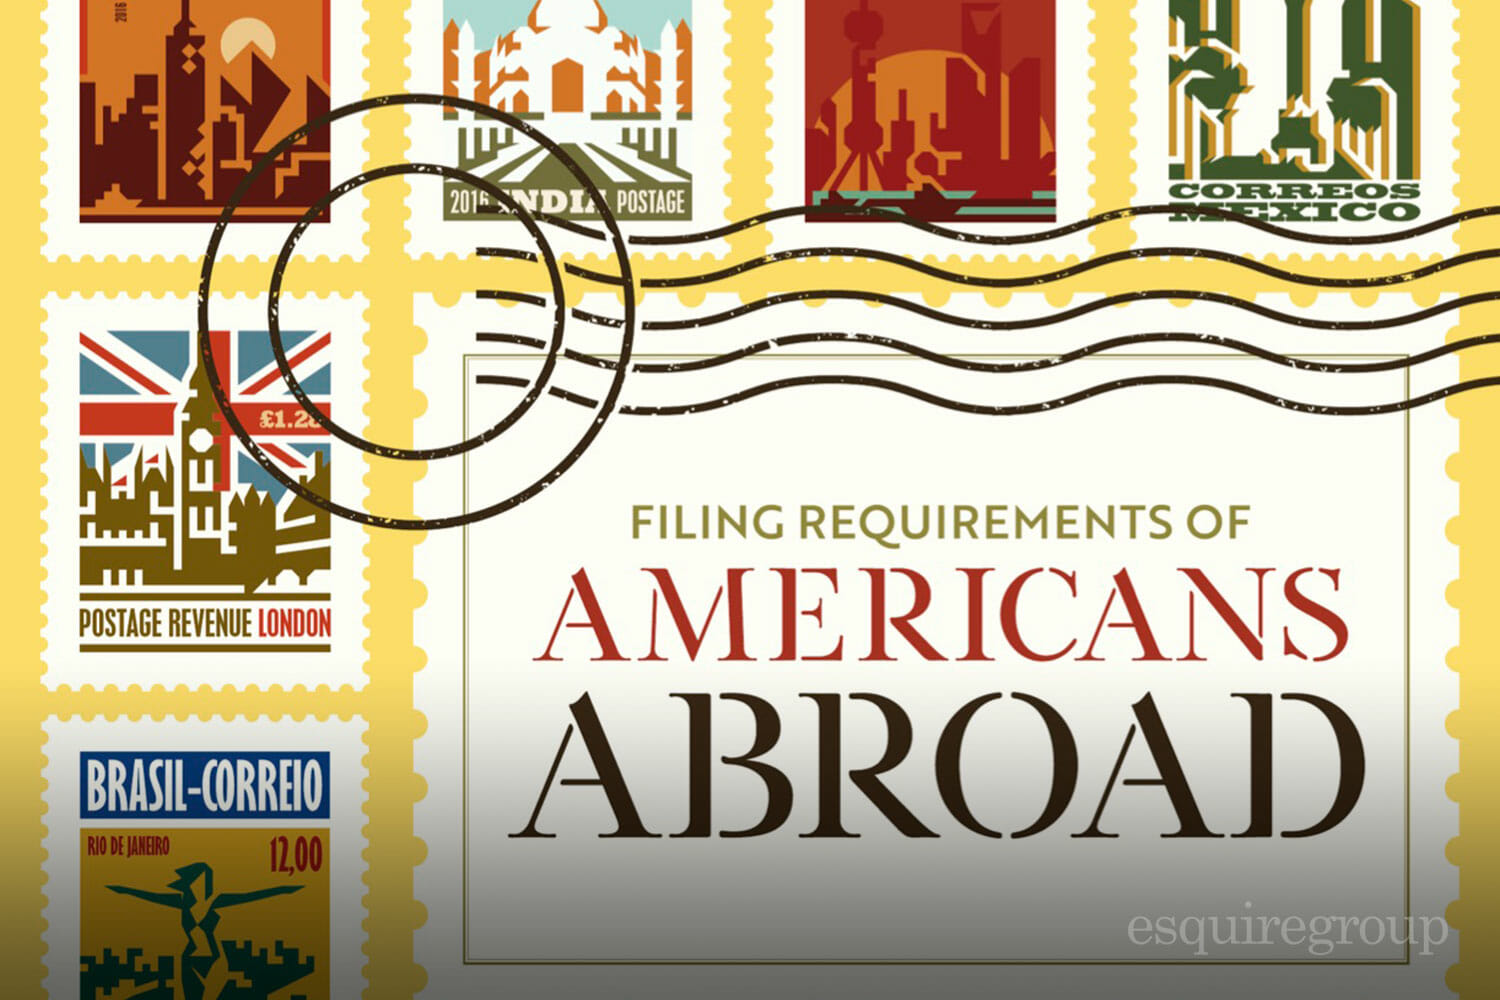 Filing Requirements of Americans Abroad